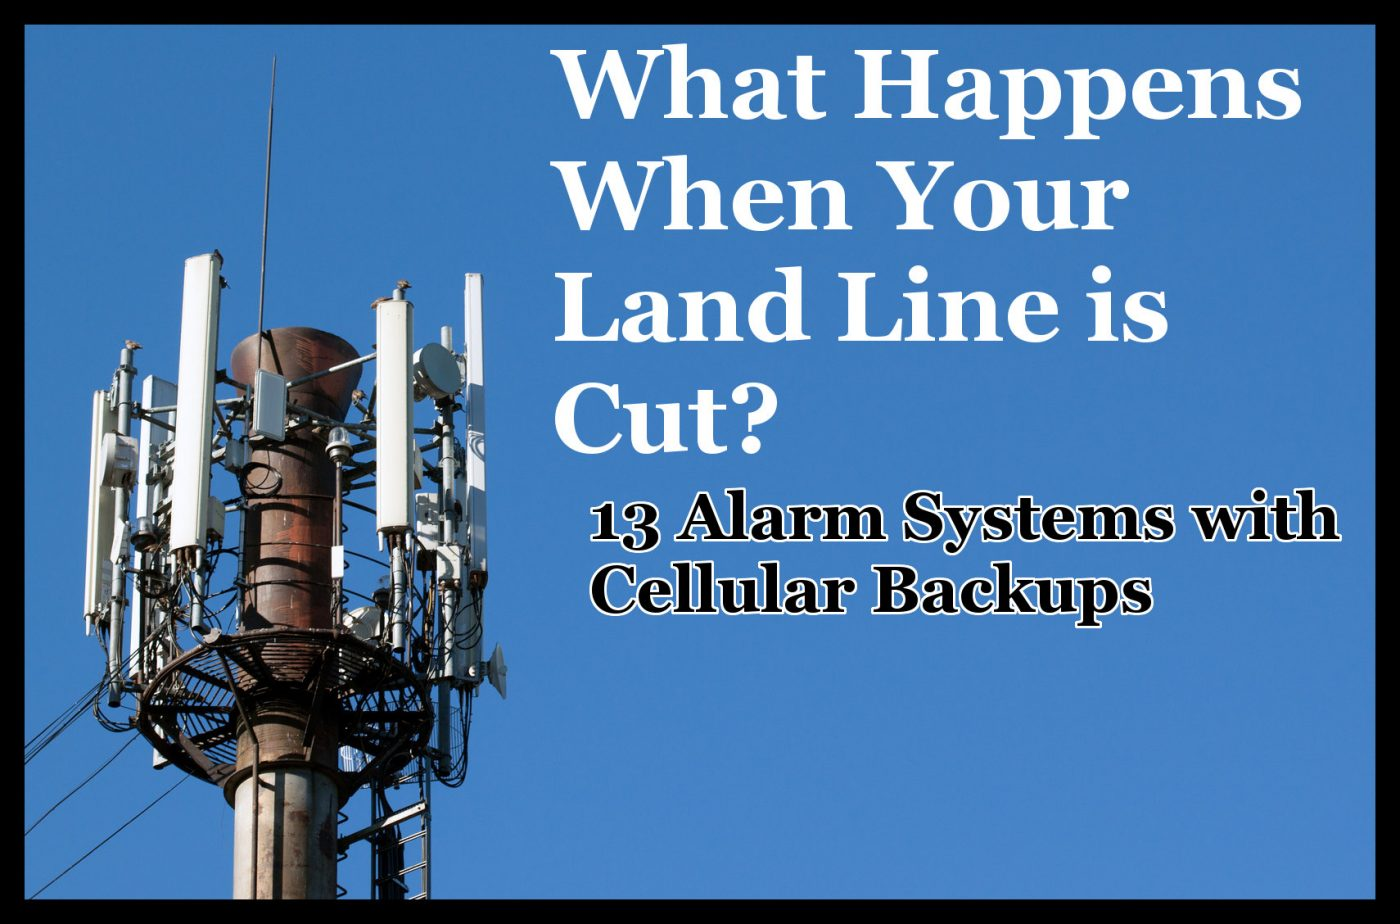 alarm systems with cellular backups